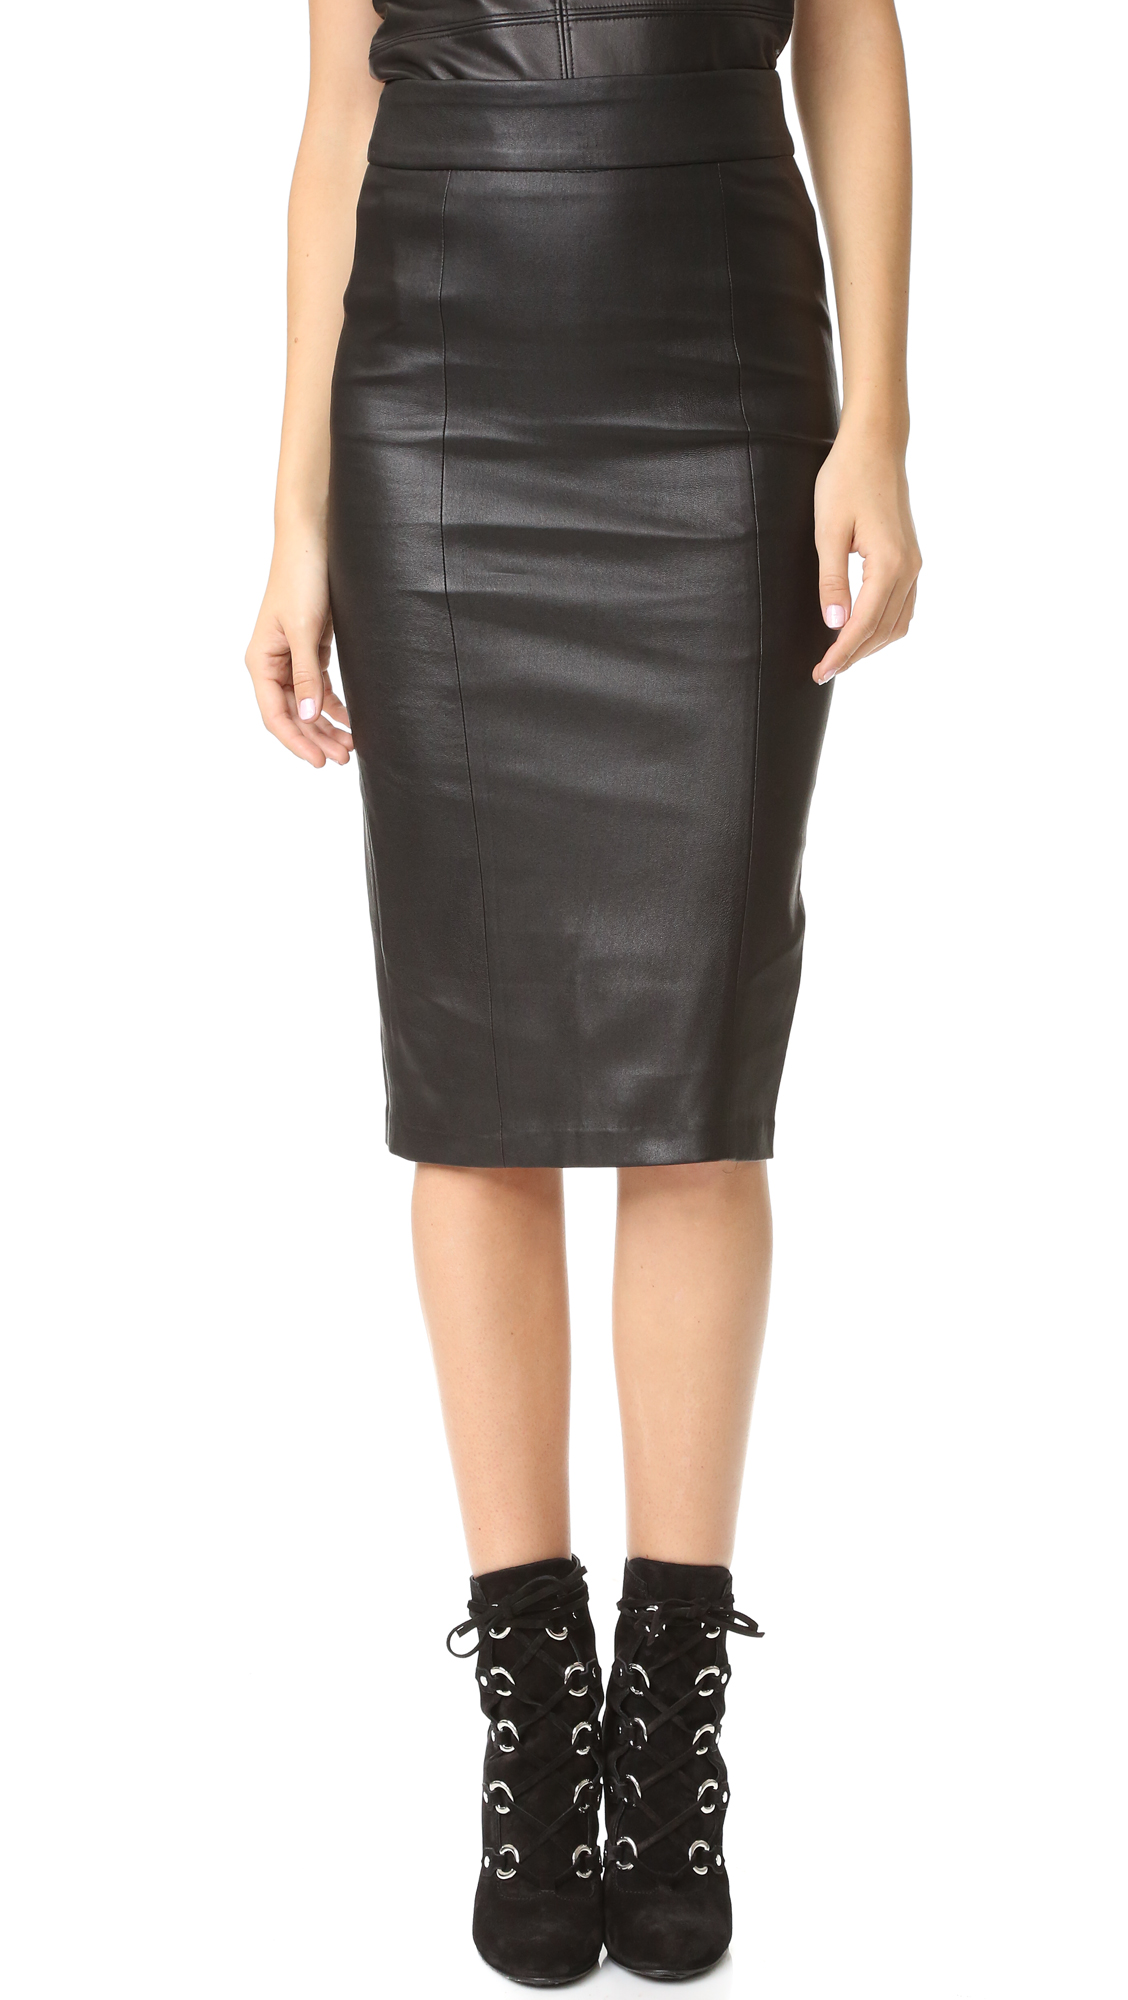 An edgy Mackage midi skirt in rich lambskin. Back zip closure. Slit in back. Fused weave interior. Fabric: Leather. 100% lambskin. Leather clean. Made in Canada. Measurements Length: 27.5in / 70cm Measurements from size $. Available sizes: 4